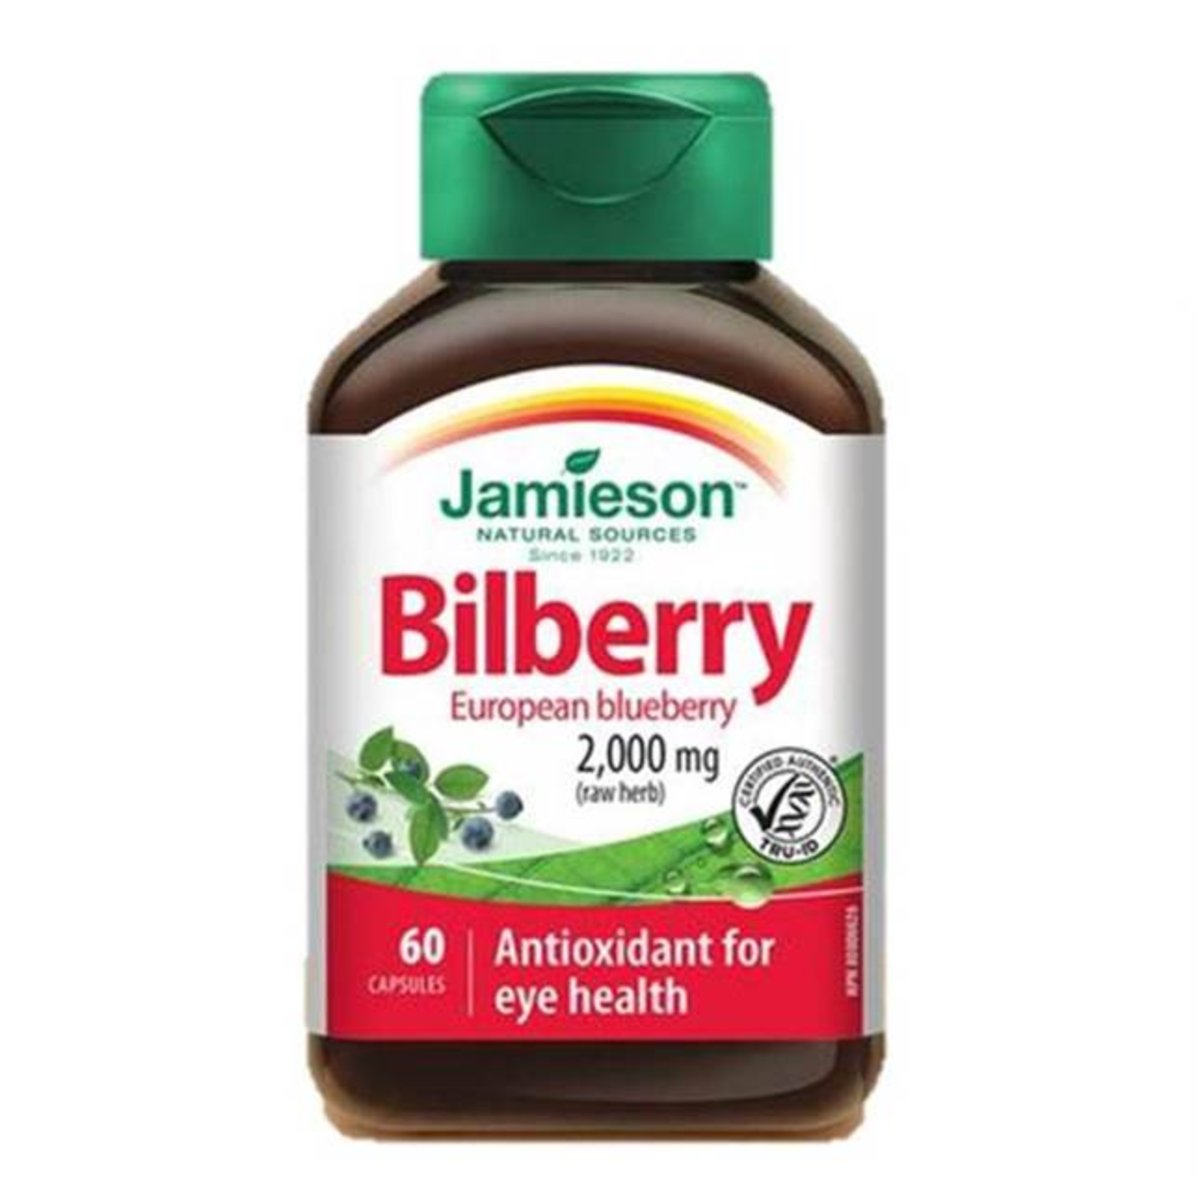 Bilberry (European Blueberry) (2000 mg) 60 capsules